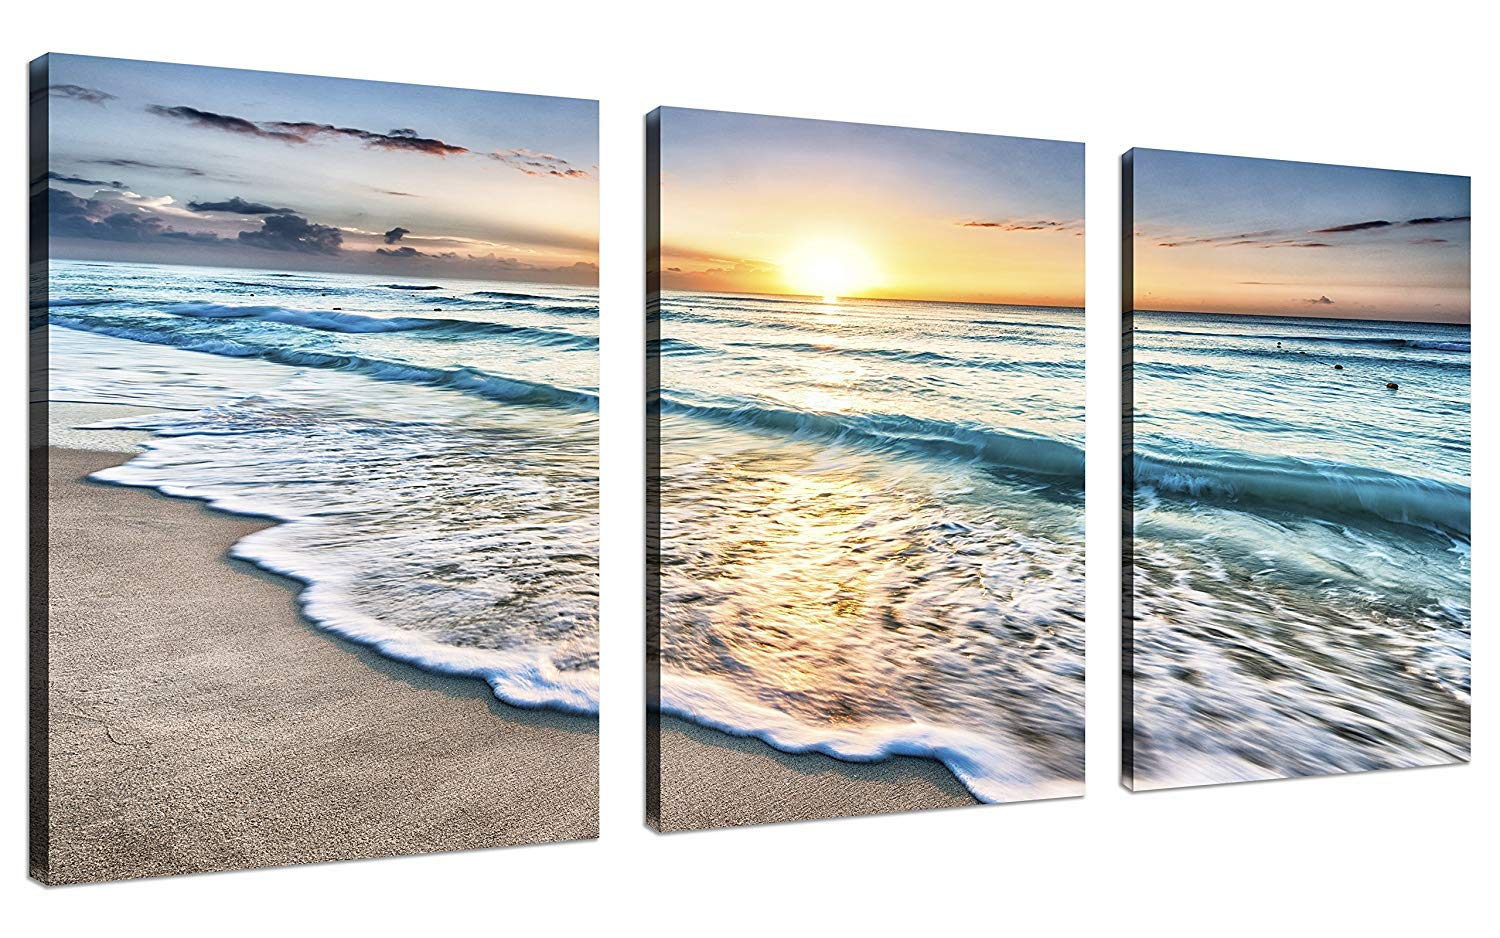 Framed Beach Wall Art.Tutubeer No Framed 3 Panel Beach Canvas Wall Art For Home Decor Blue Sea Sunset White Beach Painting The Picture Print On Canvas Seascape The Pictures